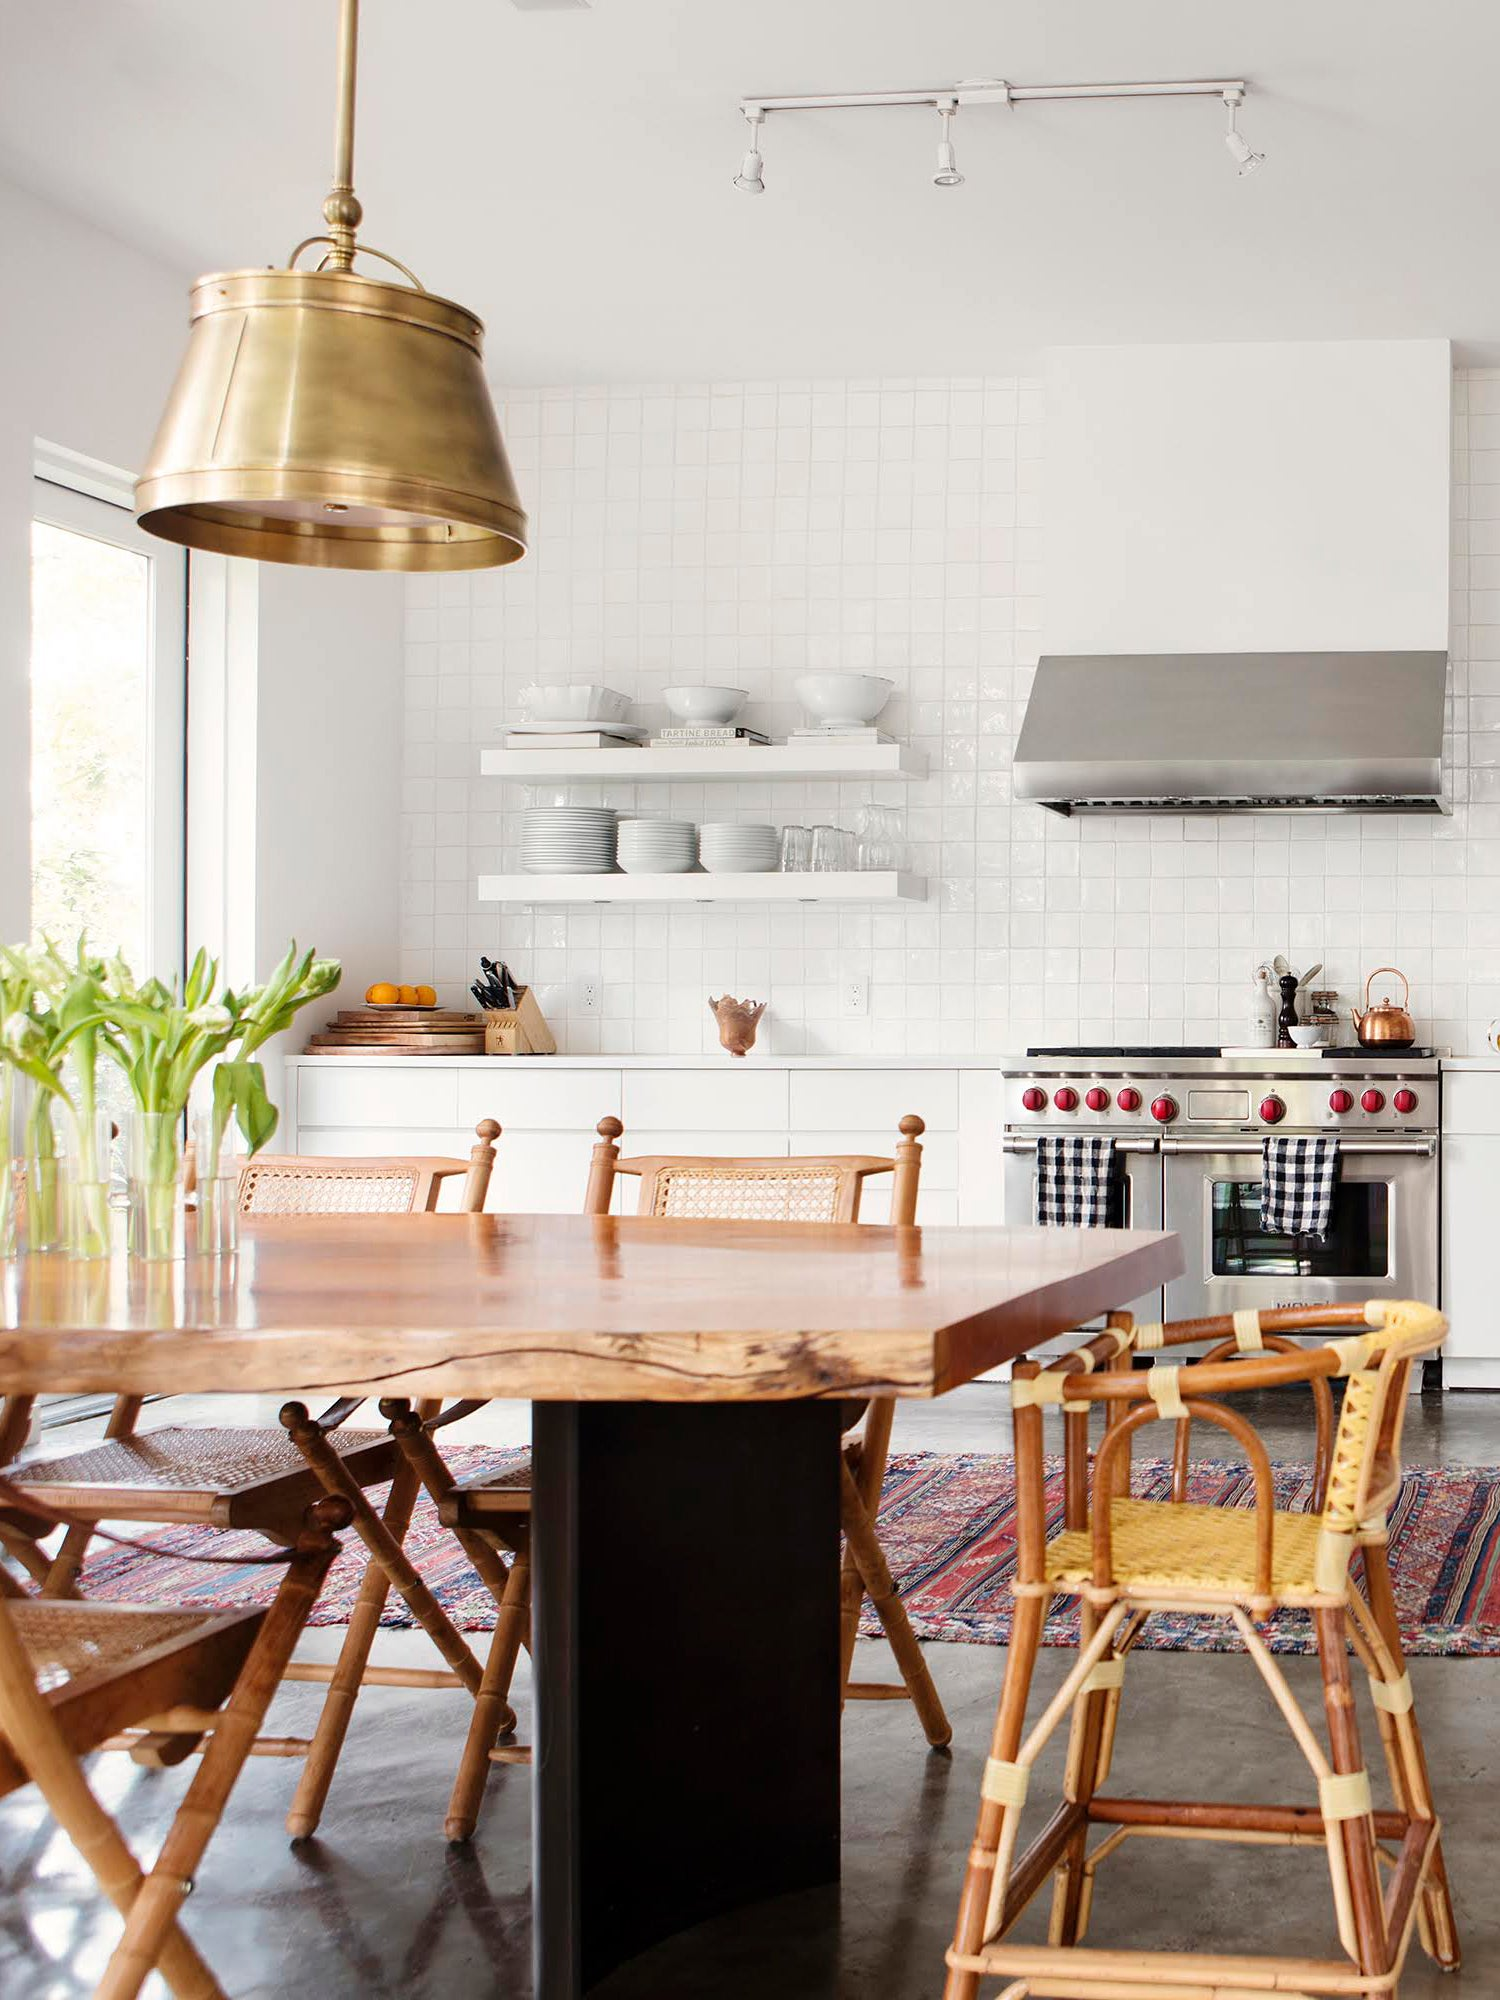 00-FEATURE-salvaged-materials-renovation-domino